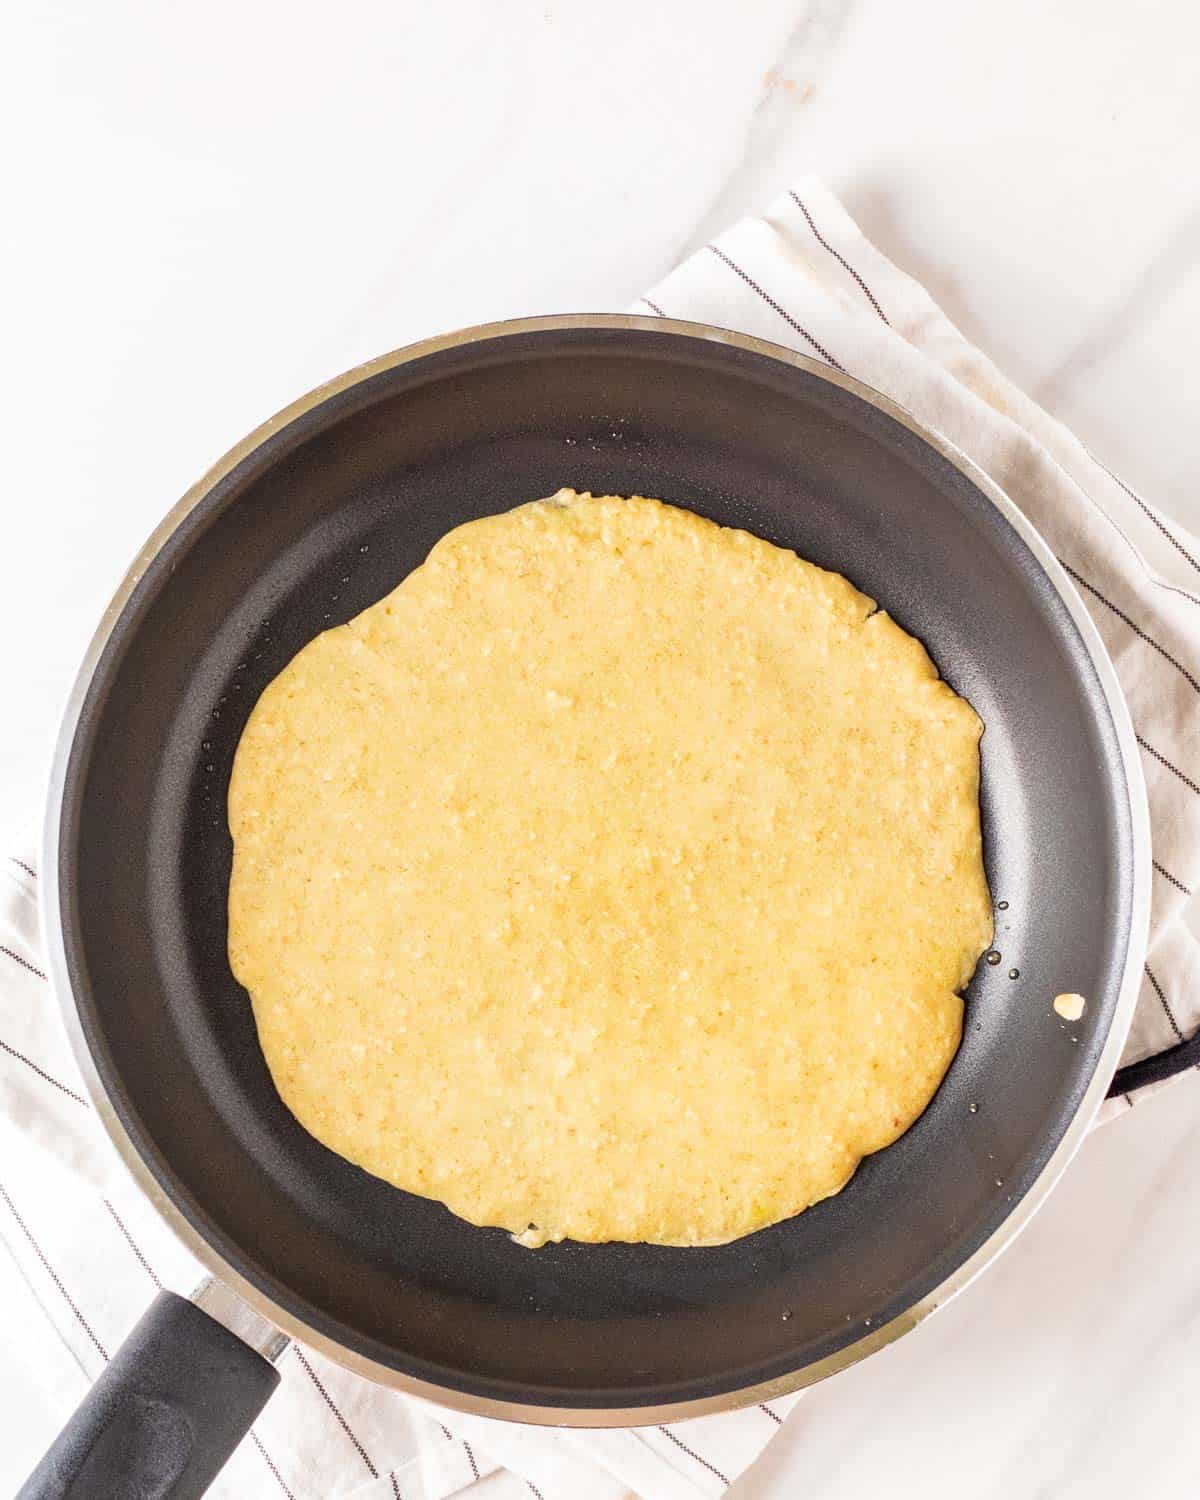 Cooking vegan crepes in a pan.